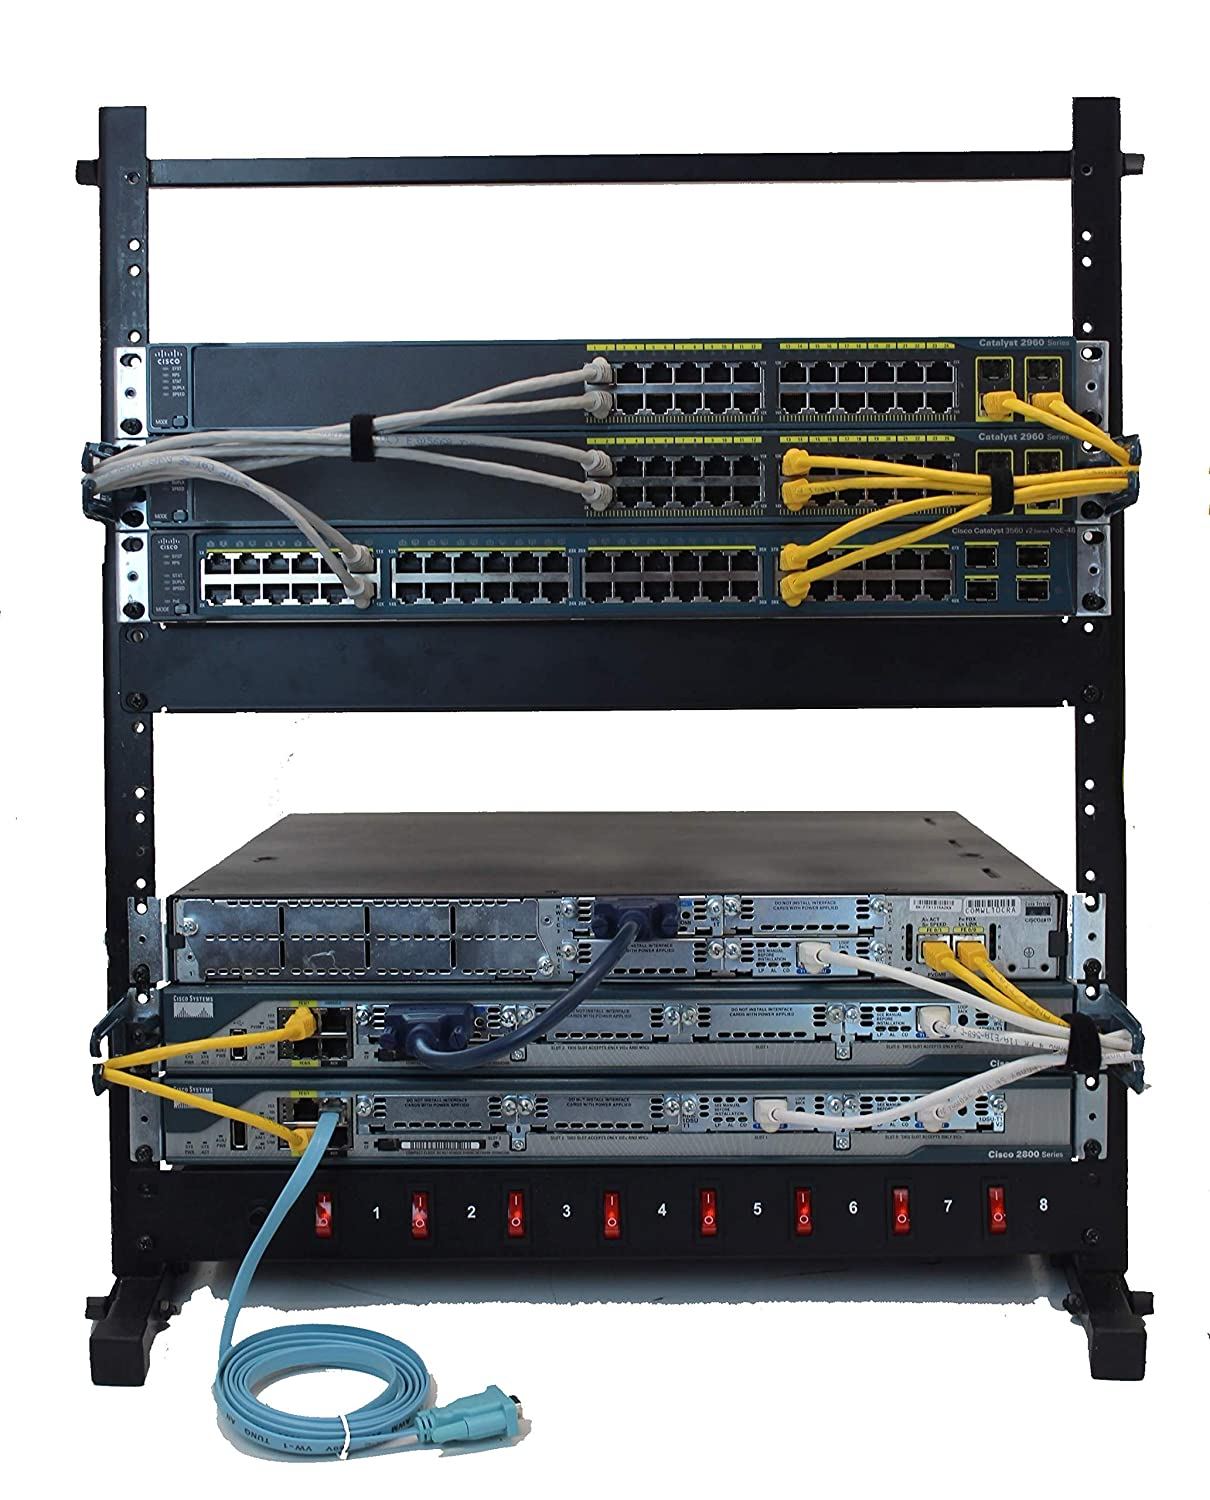 Cisco CCNA R&S Standard Lab Kit - 200-125 Routing & Switching Certification